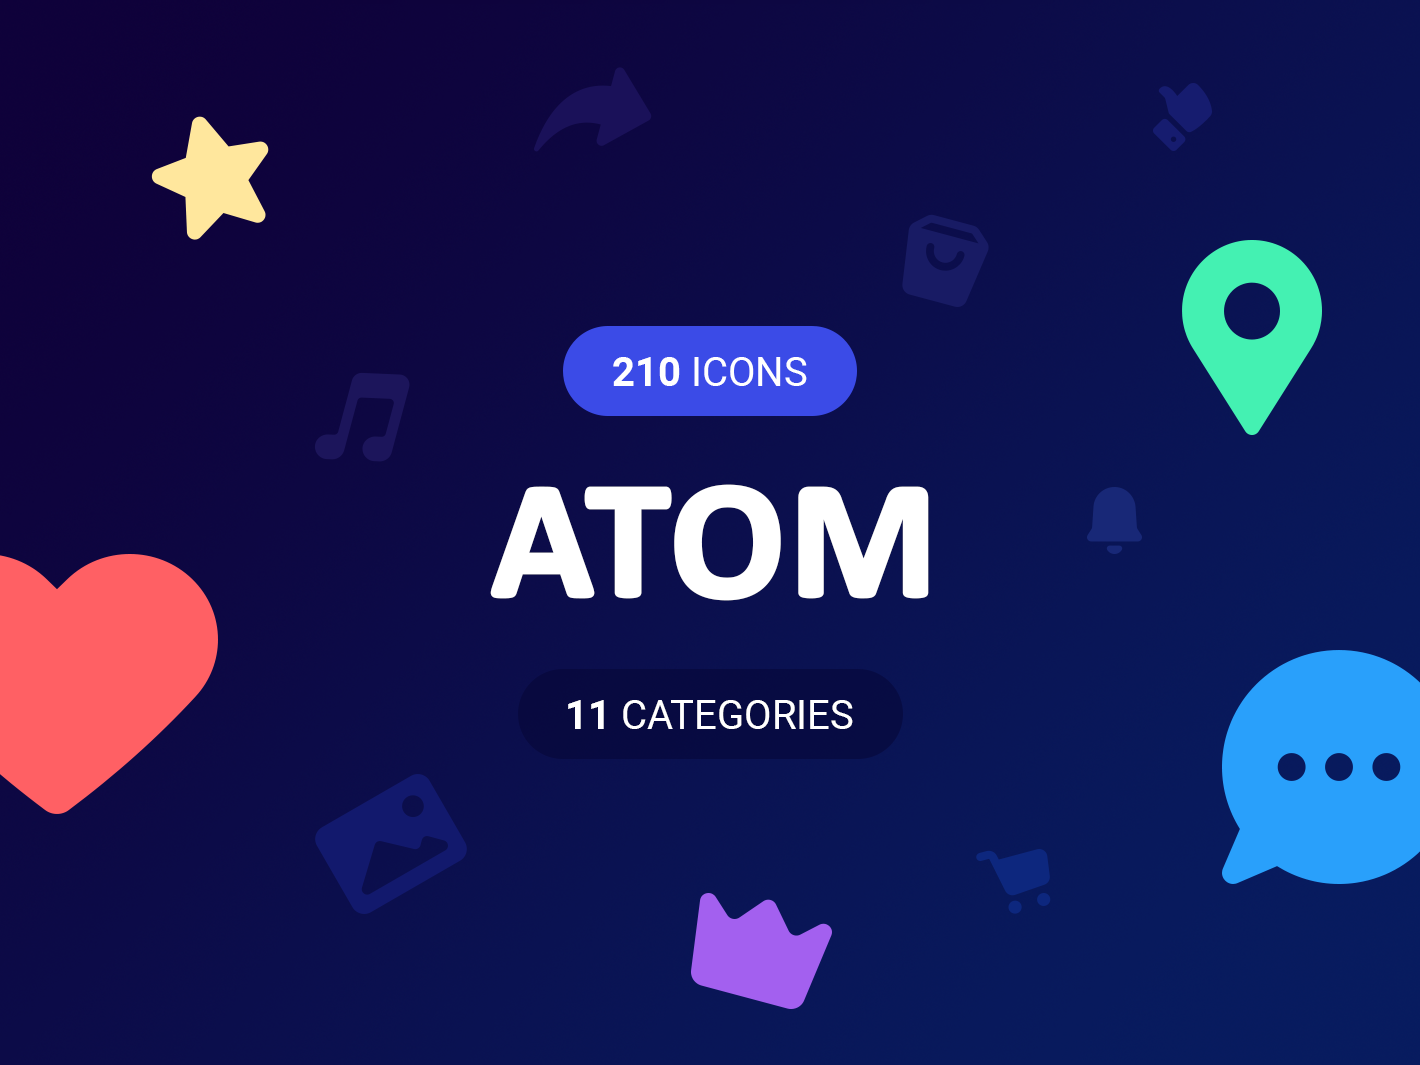 ATOM Icons mousecrafted web photoshop adobe sketch illustration icon app vector ux logo icons ui template branding resource design